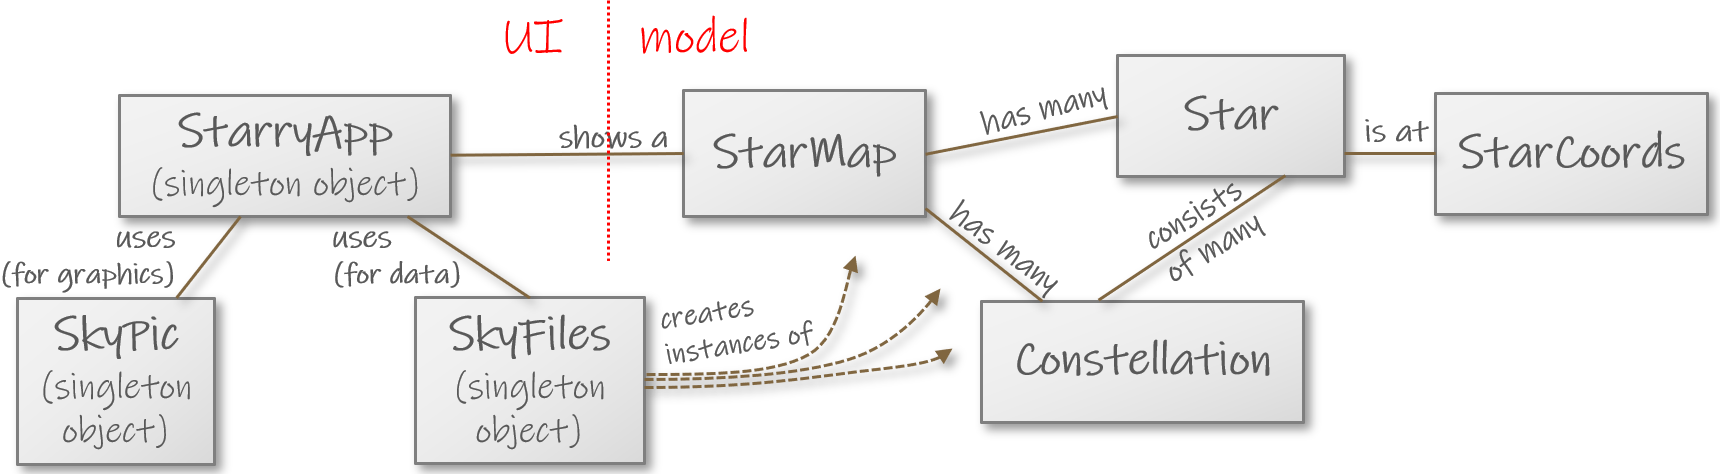 ../_images/module_stars_withconstellations.png